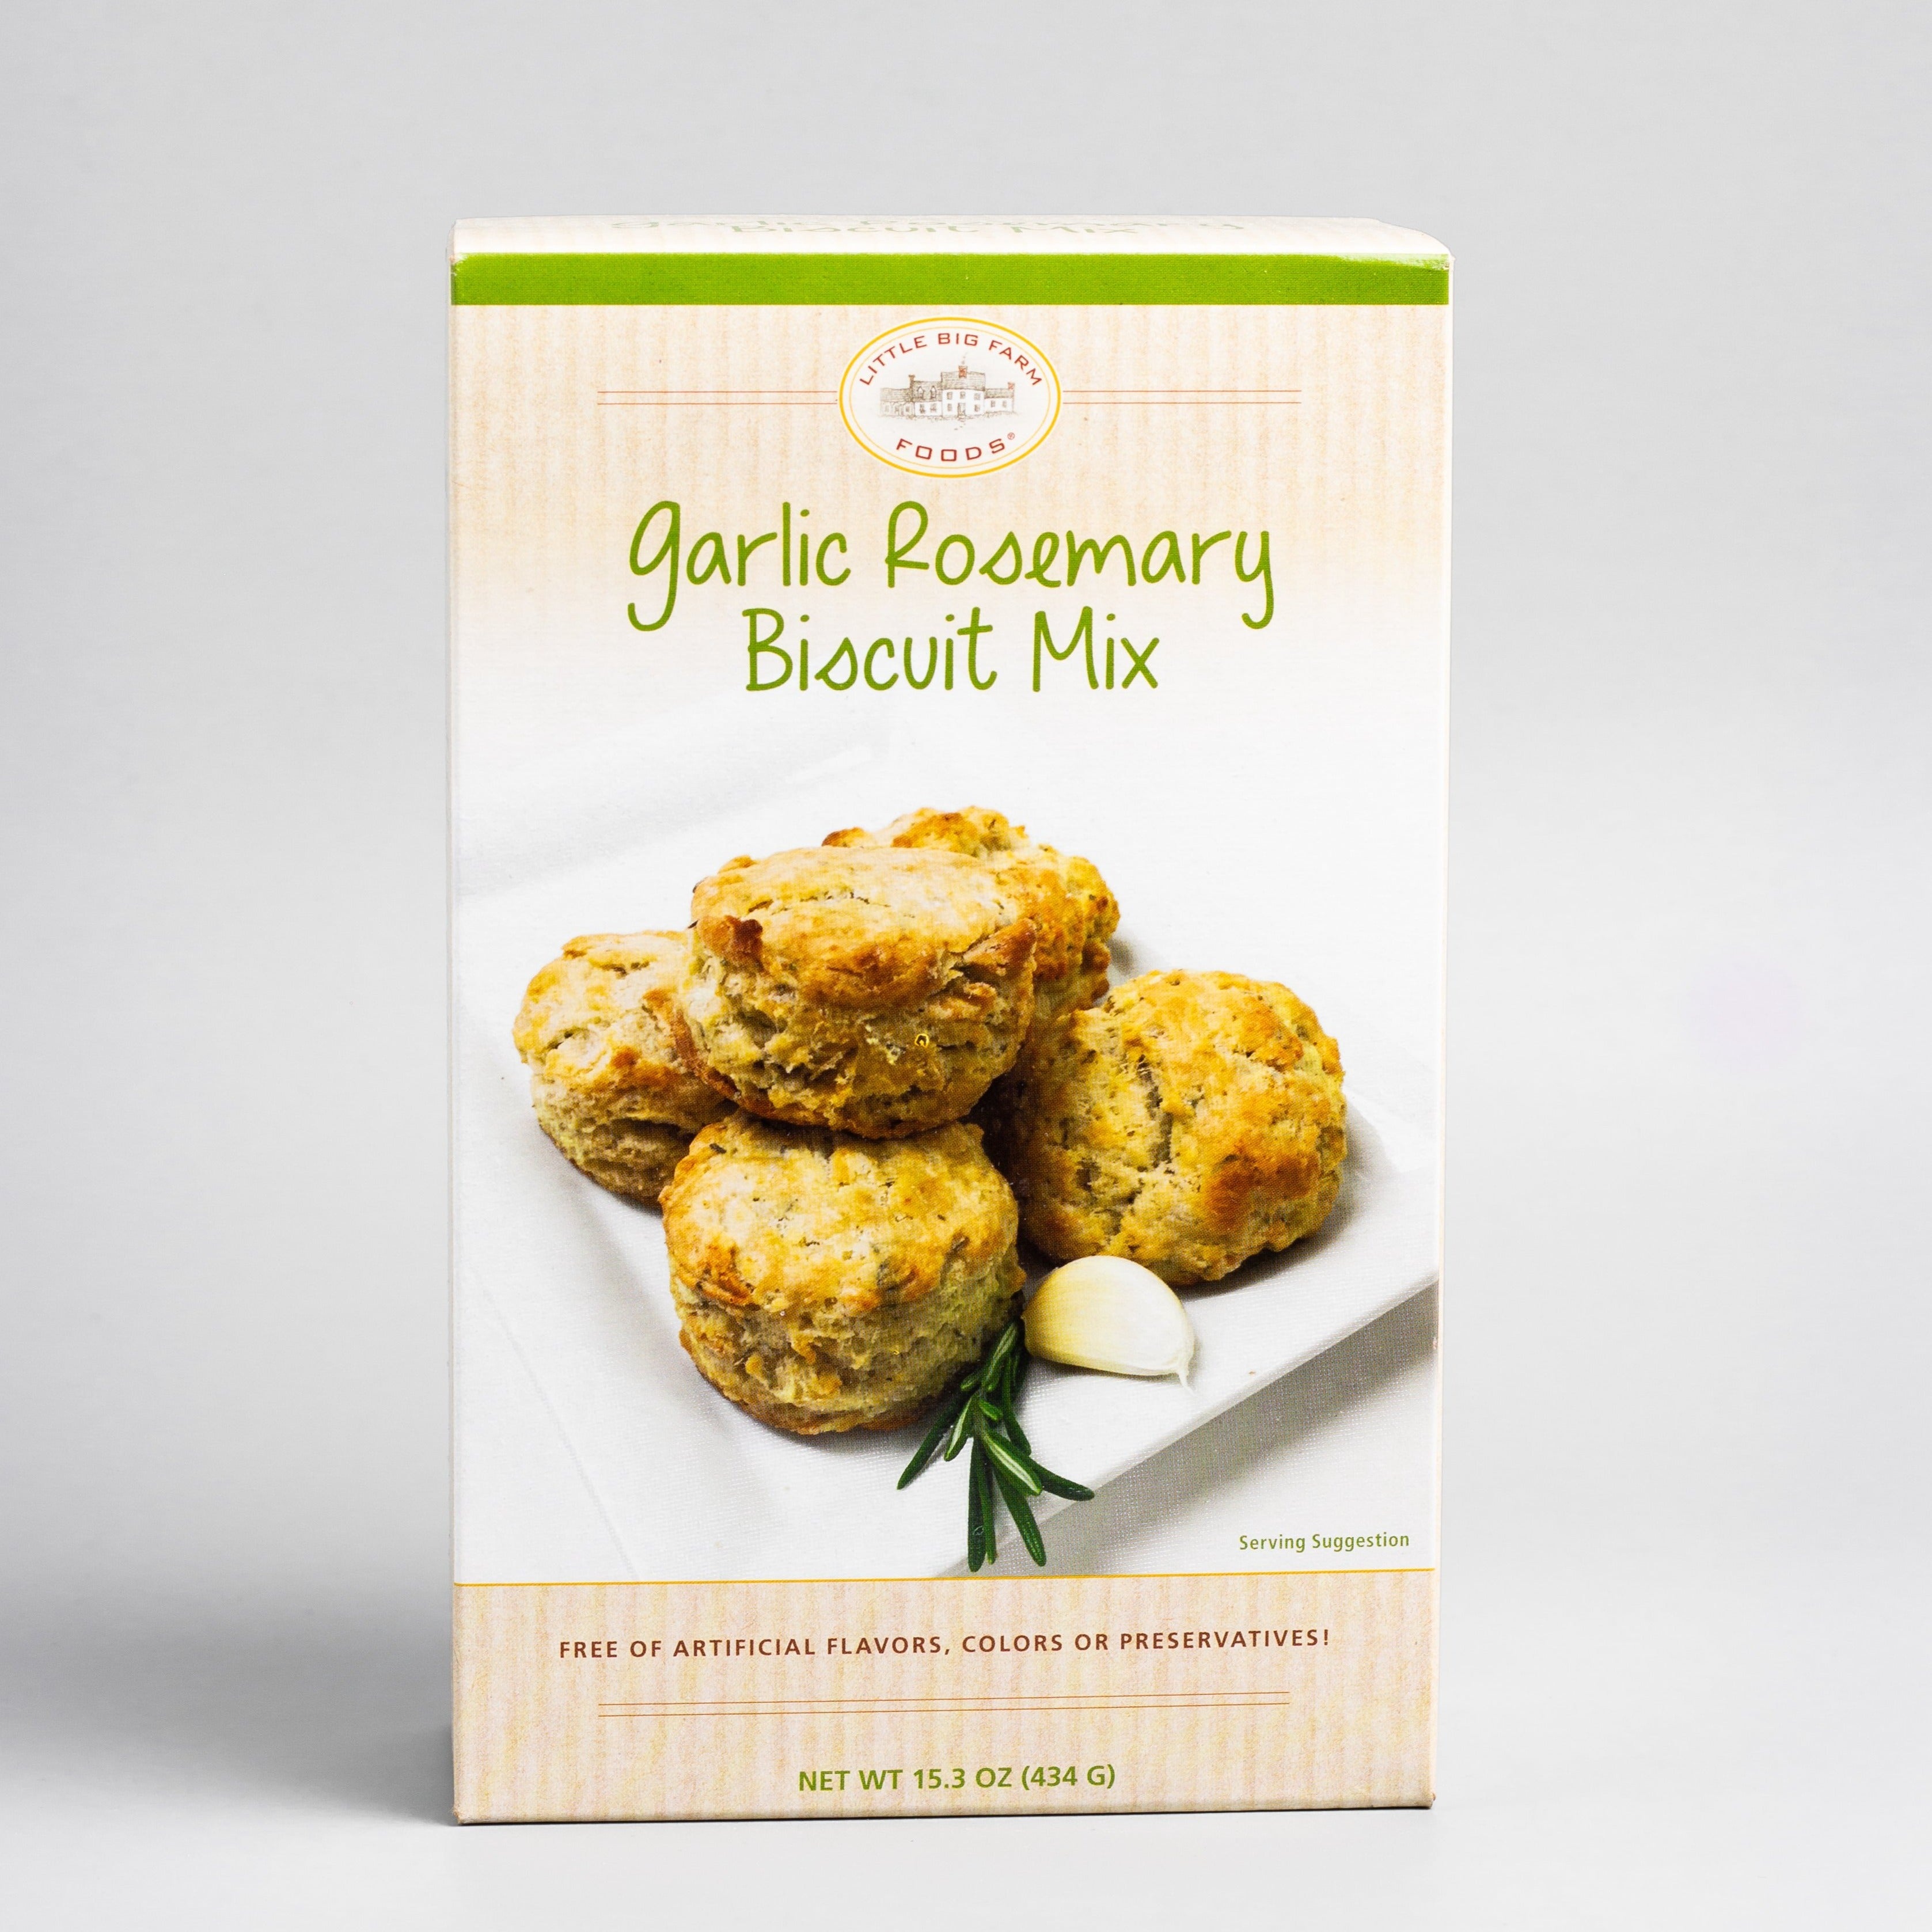 Garlic Rosemary Biscuit Mix